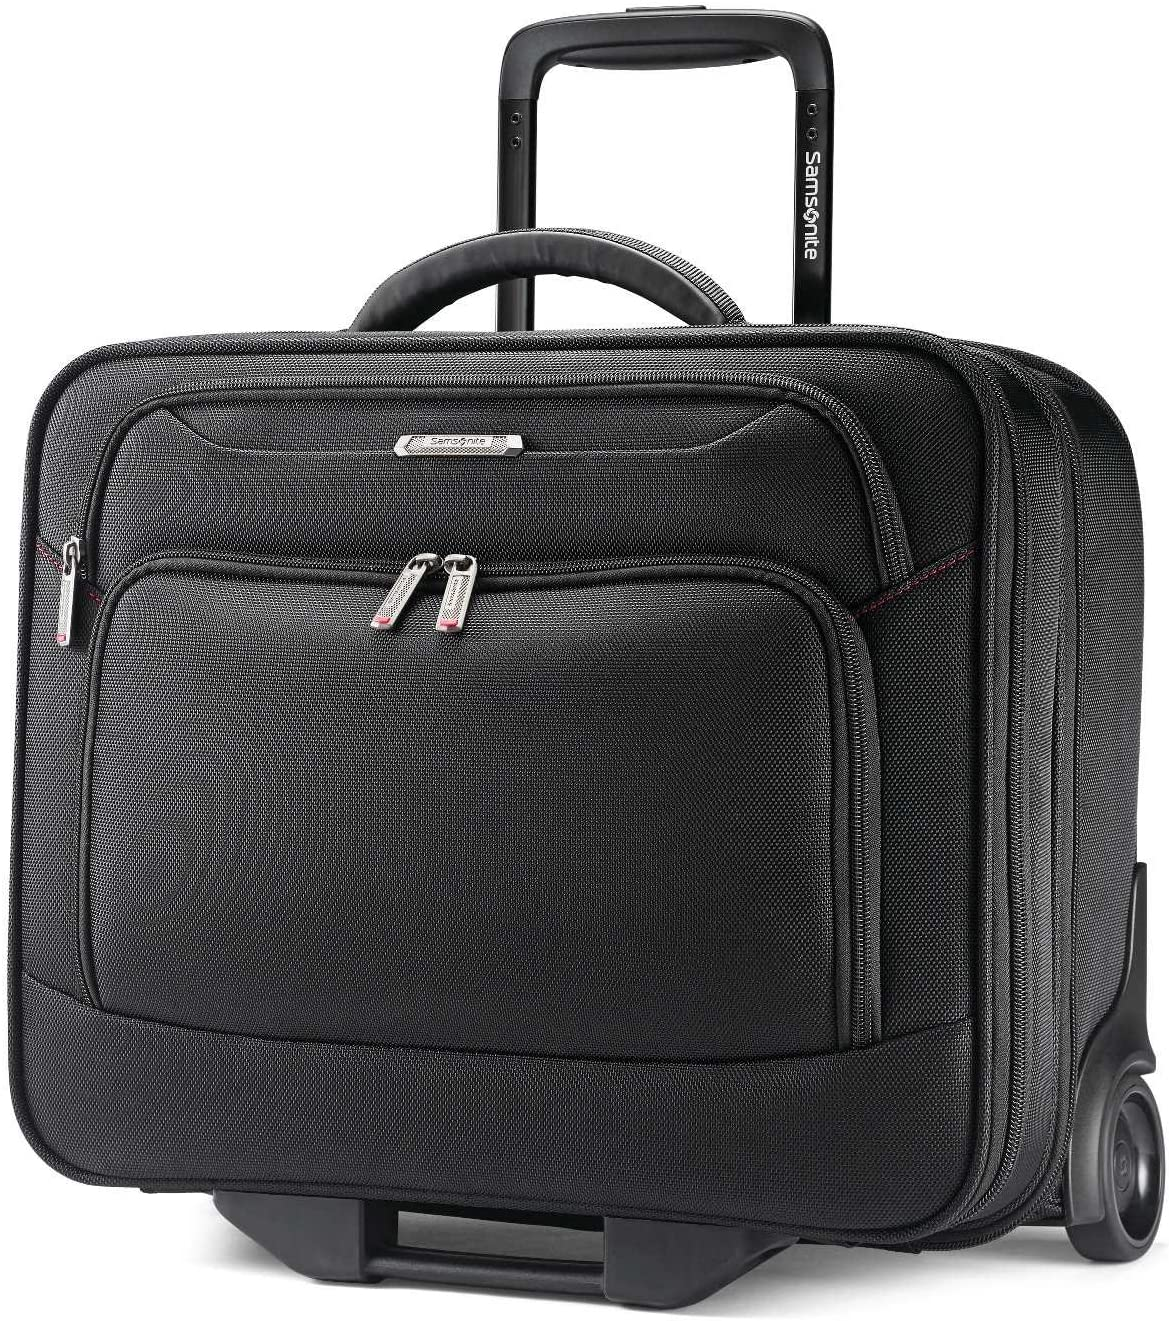 Samsonite Xenon 3.0 Mobile Office Laptop Bag, Black, One Size